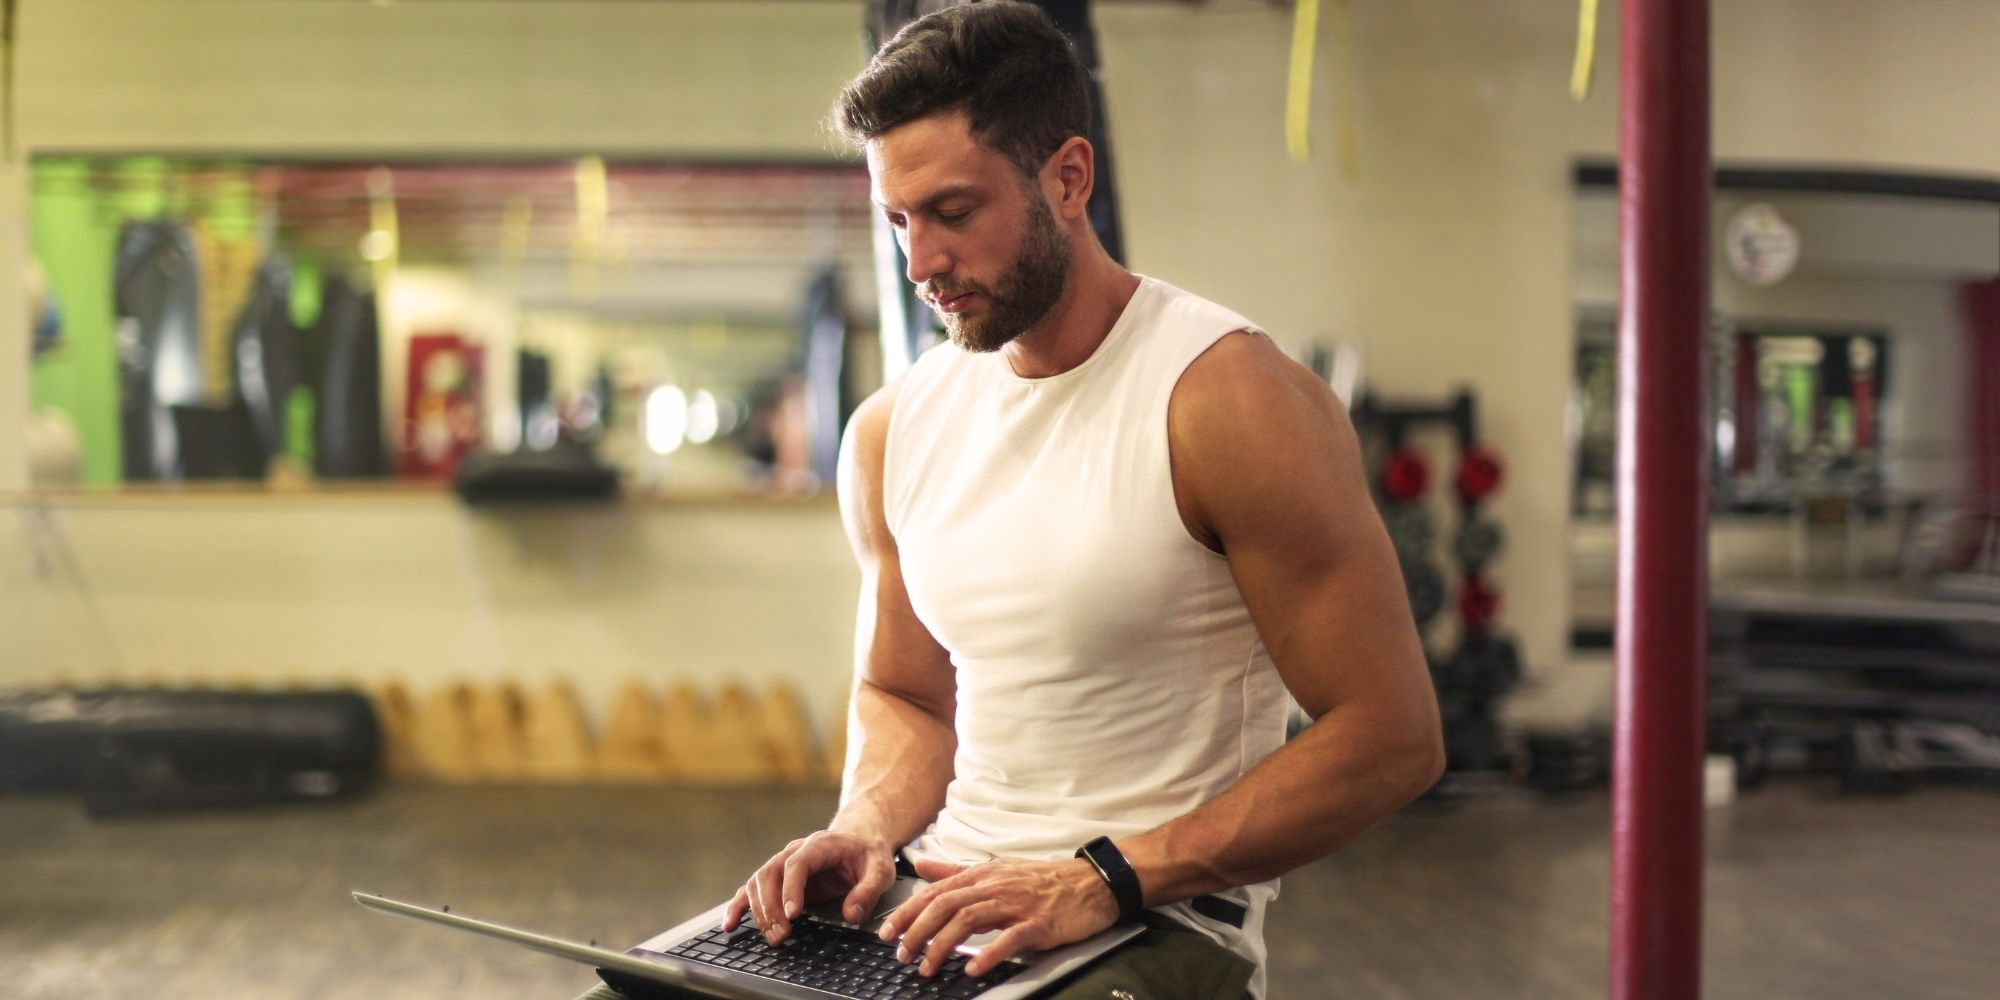 How to Be a Successful Online Fitness Coach